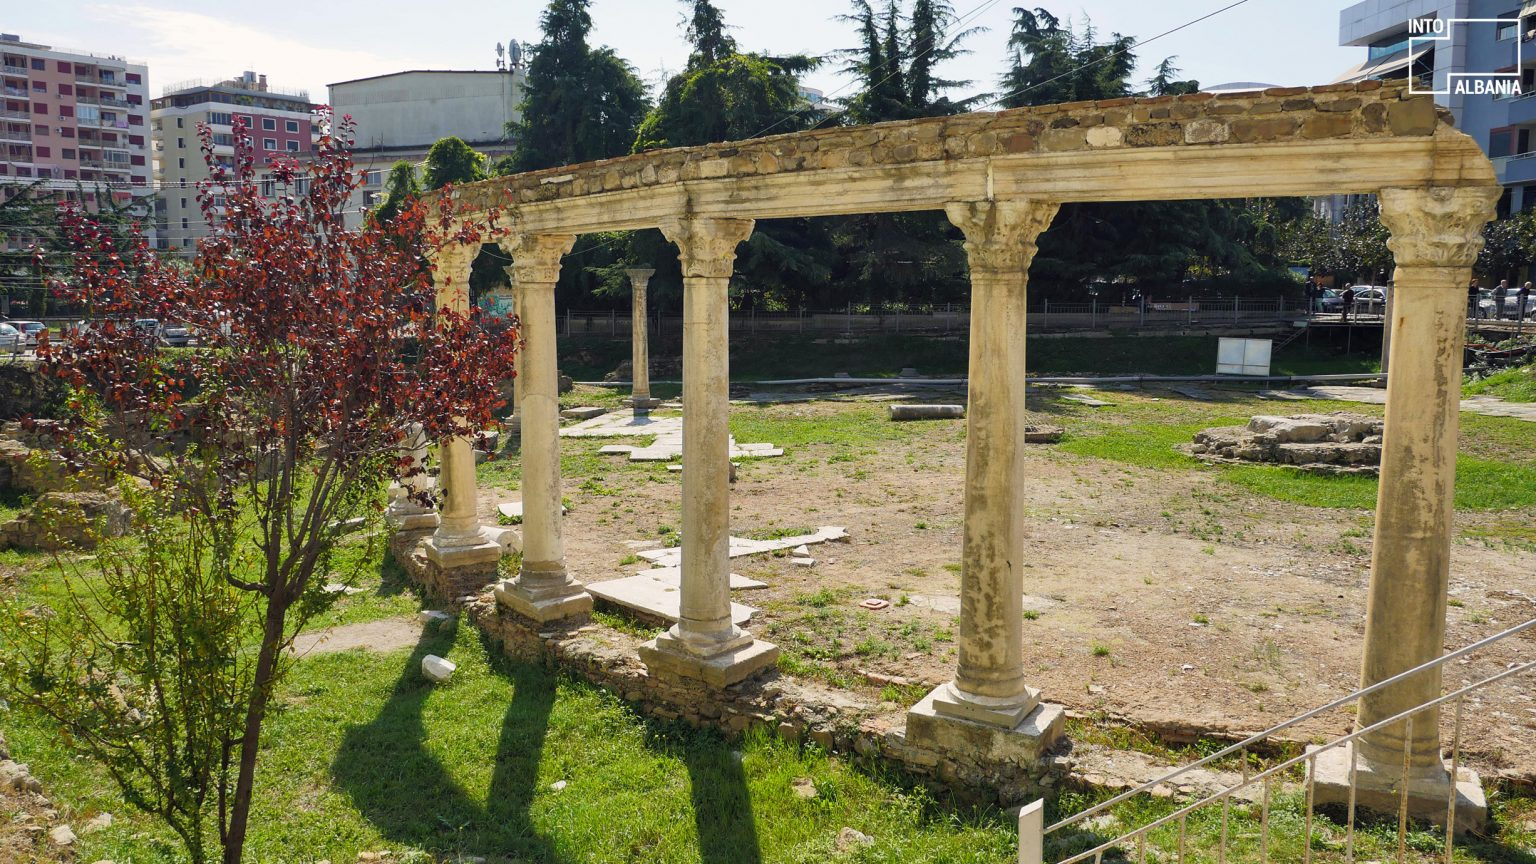 Byzantine Forum in Durrës, photo by IntoAlbania.